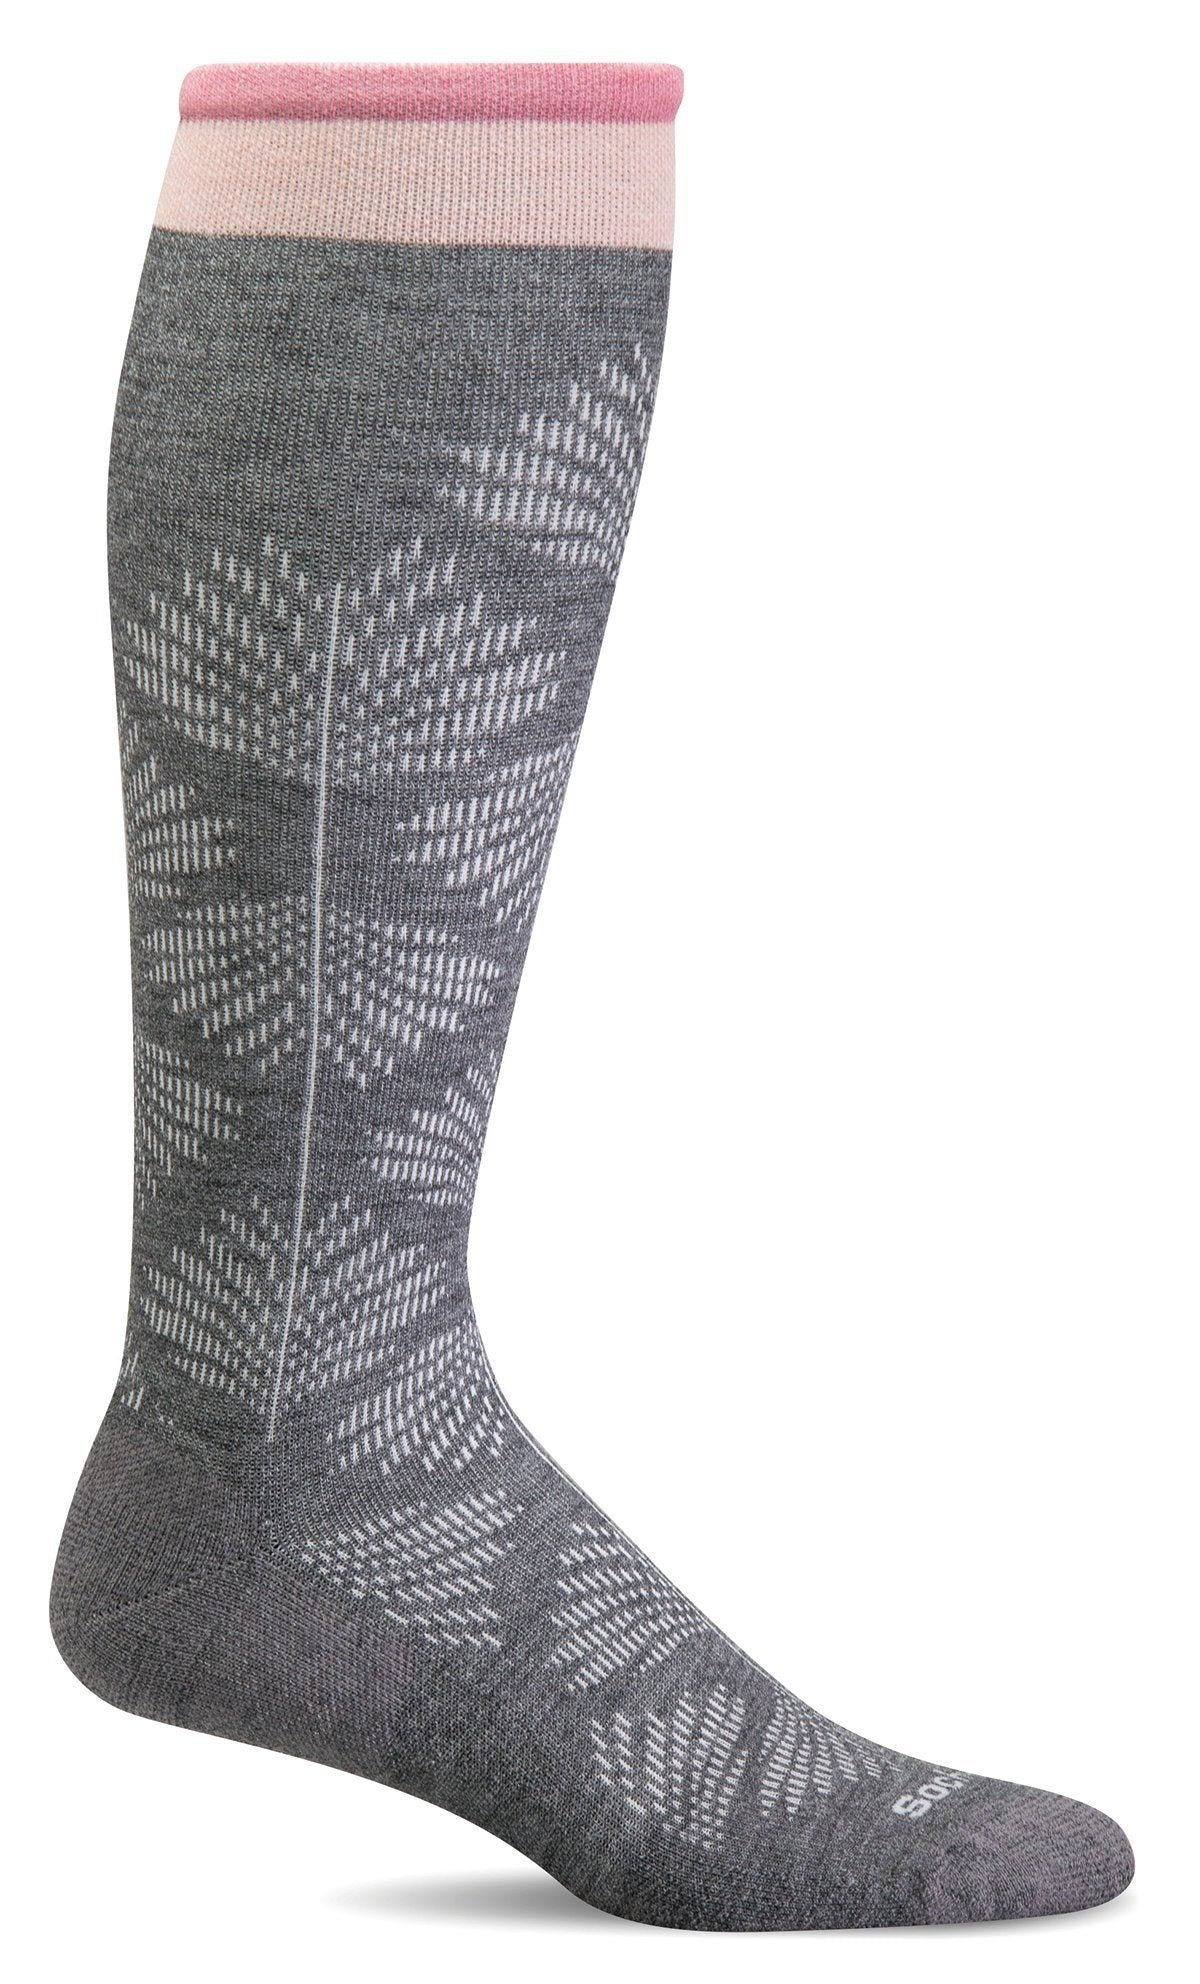 Sockwell - Full Floral Moderate Graduated Compression (15-20 mmHg) Socks | Women's - Knock Your Socks Off